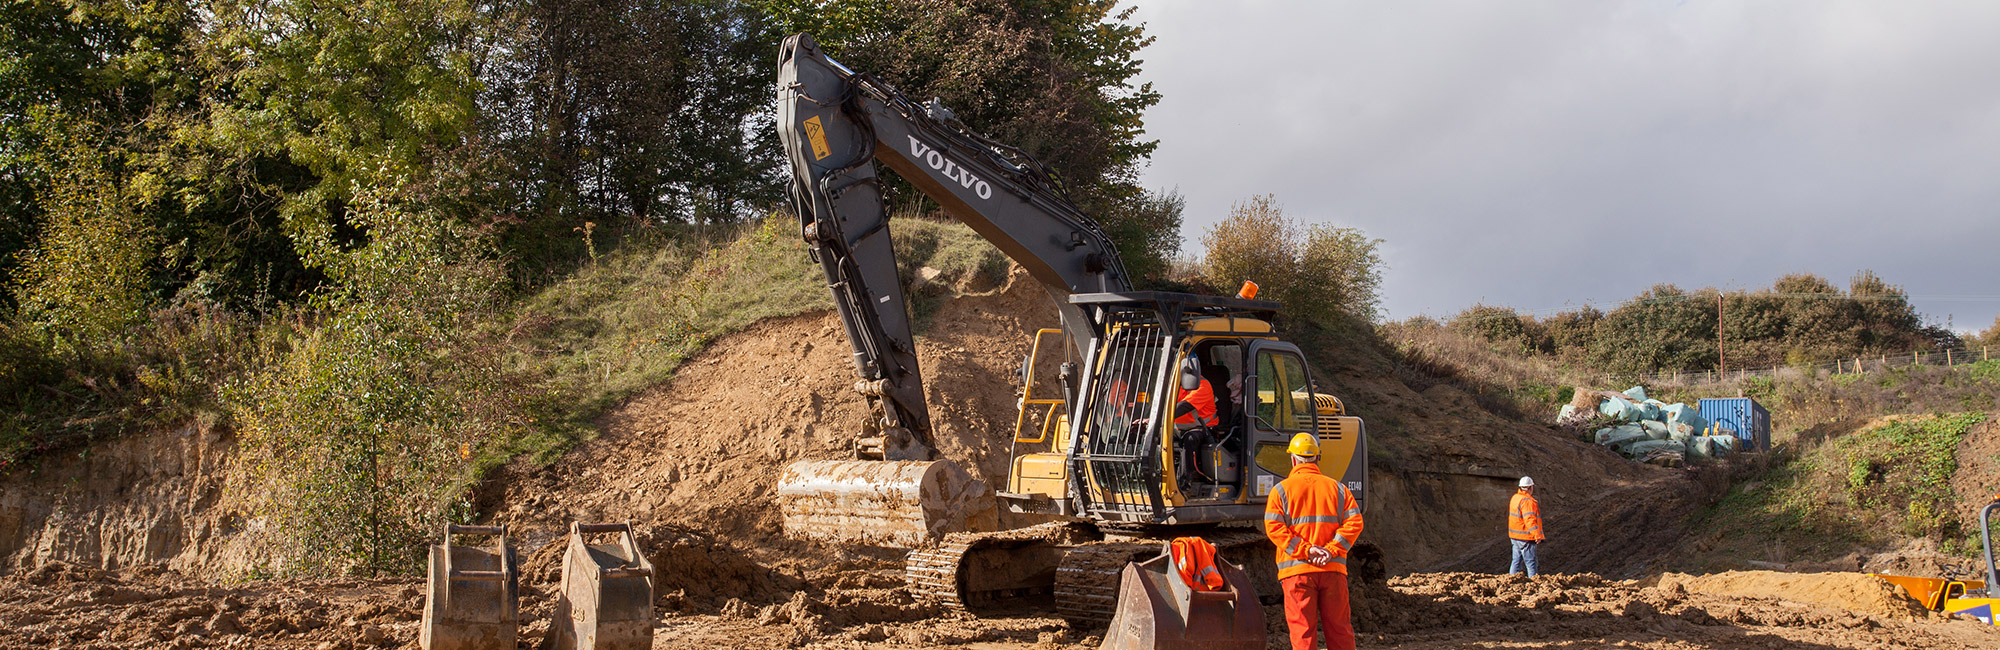 360 Excavator Training In Doncaster Rotherham Barnsley